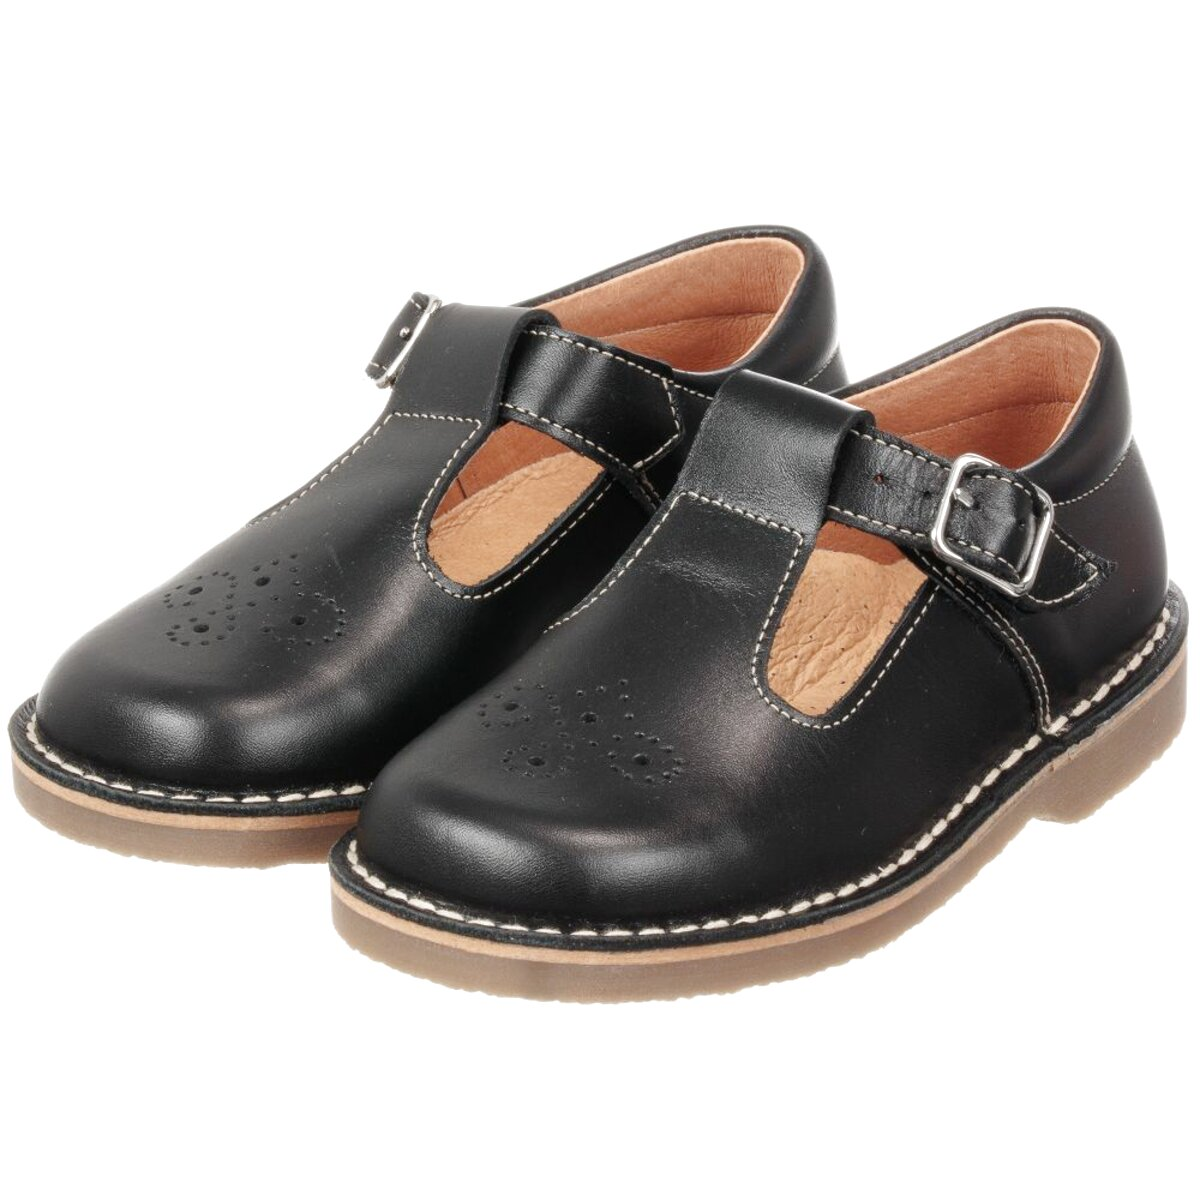 t bar shoes for sale